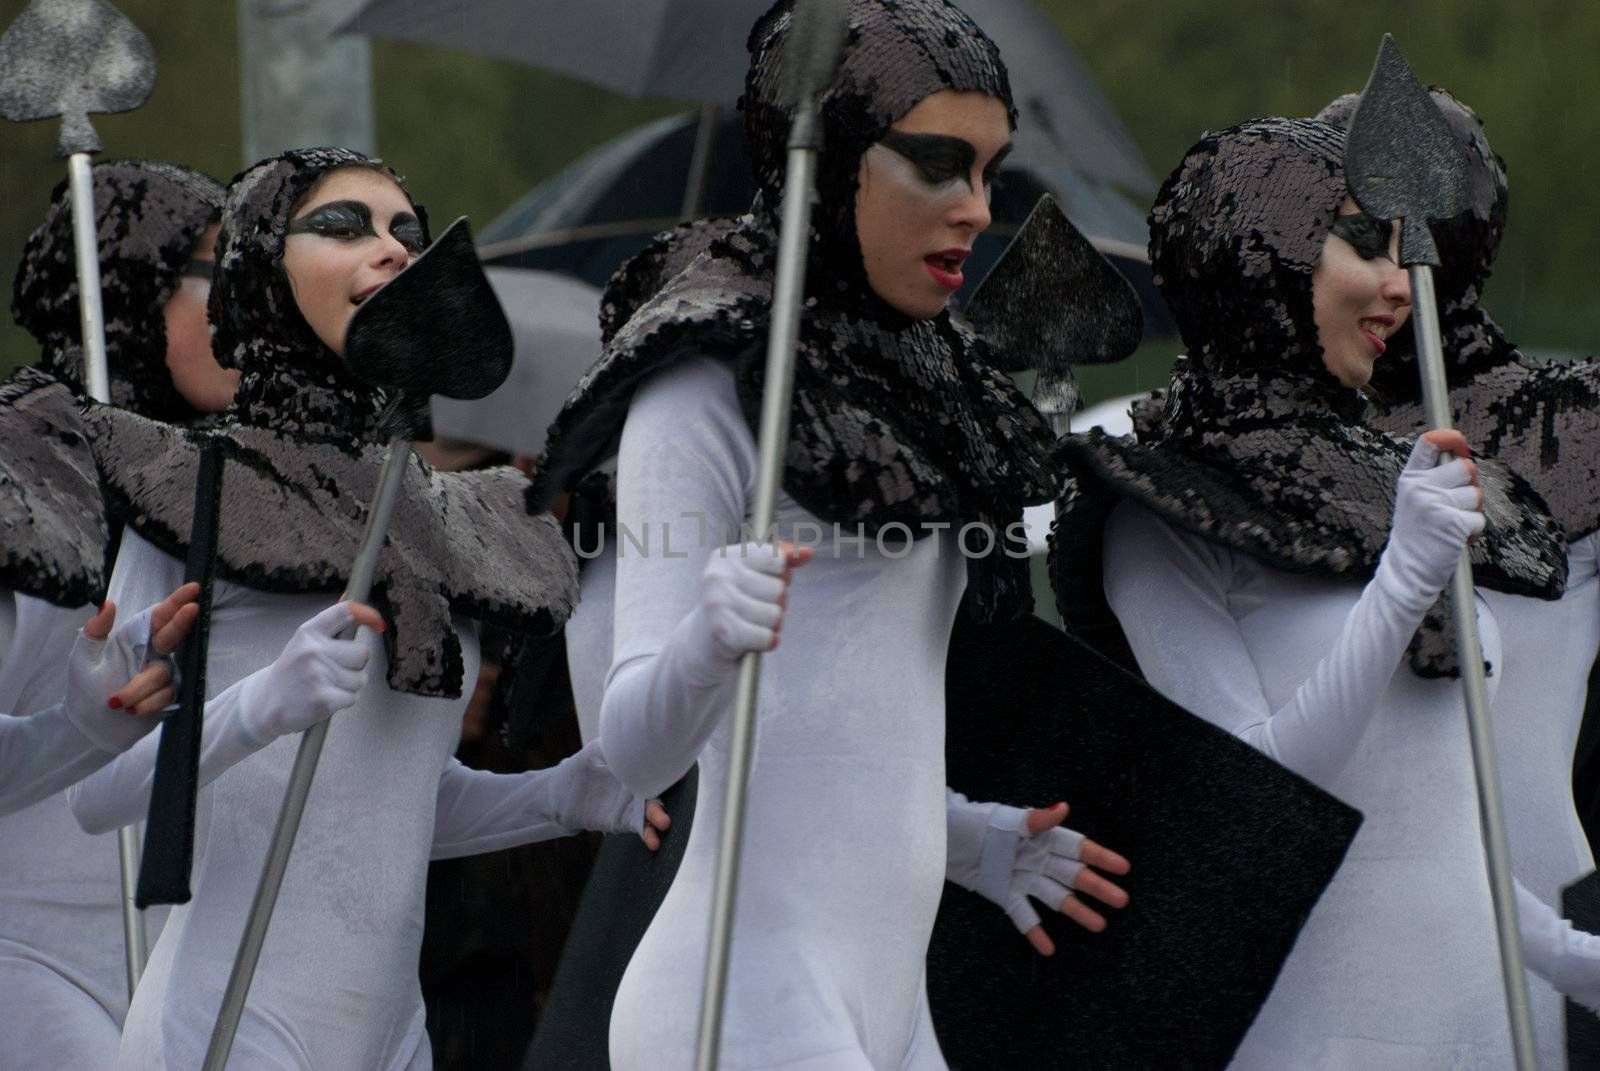 OVAR, PORTUGAL - MARCH 8: Group 'Bailarinos'  during the Carnival Parade on March 8, 2011 in Ovar, Portugal.